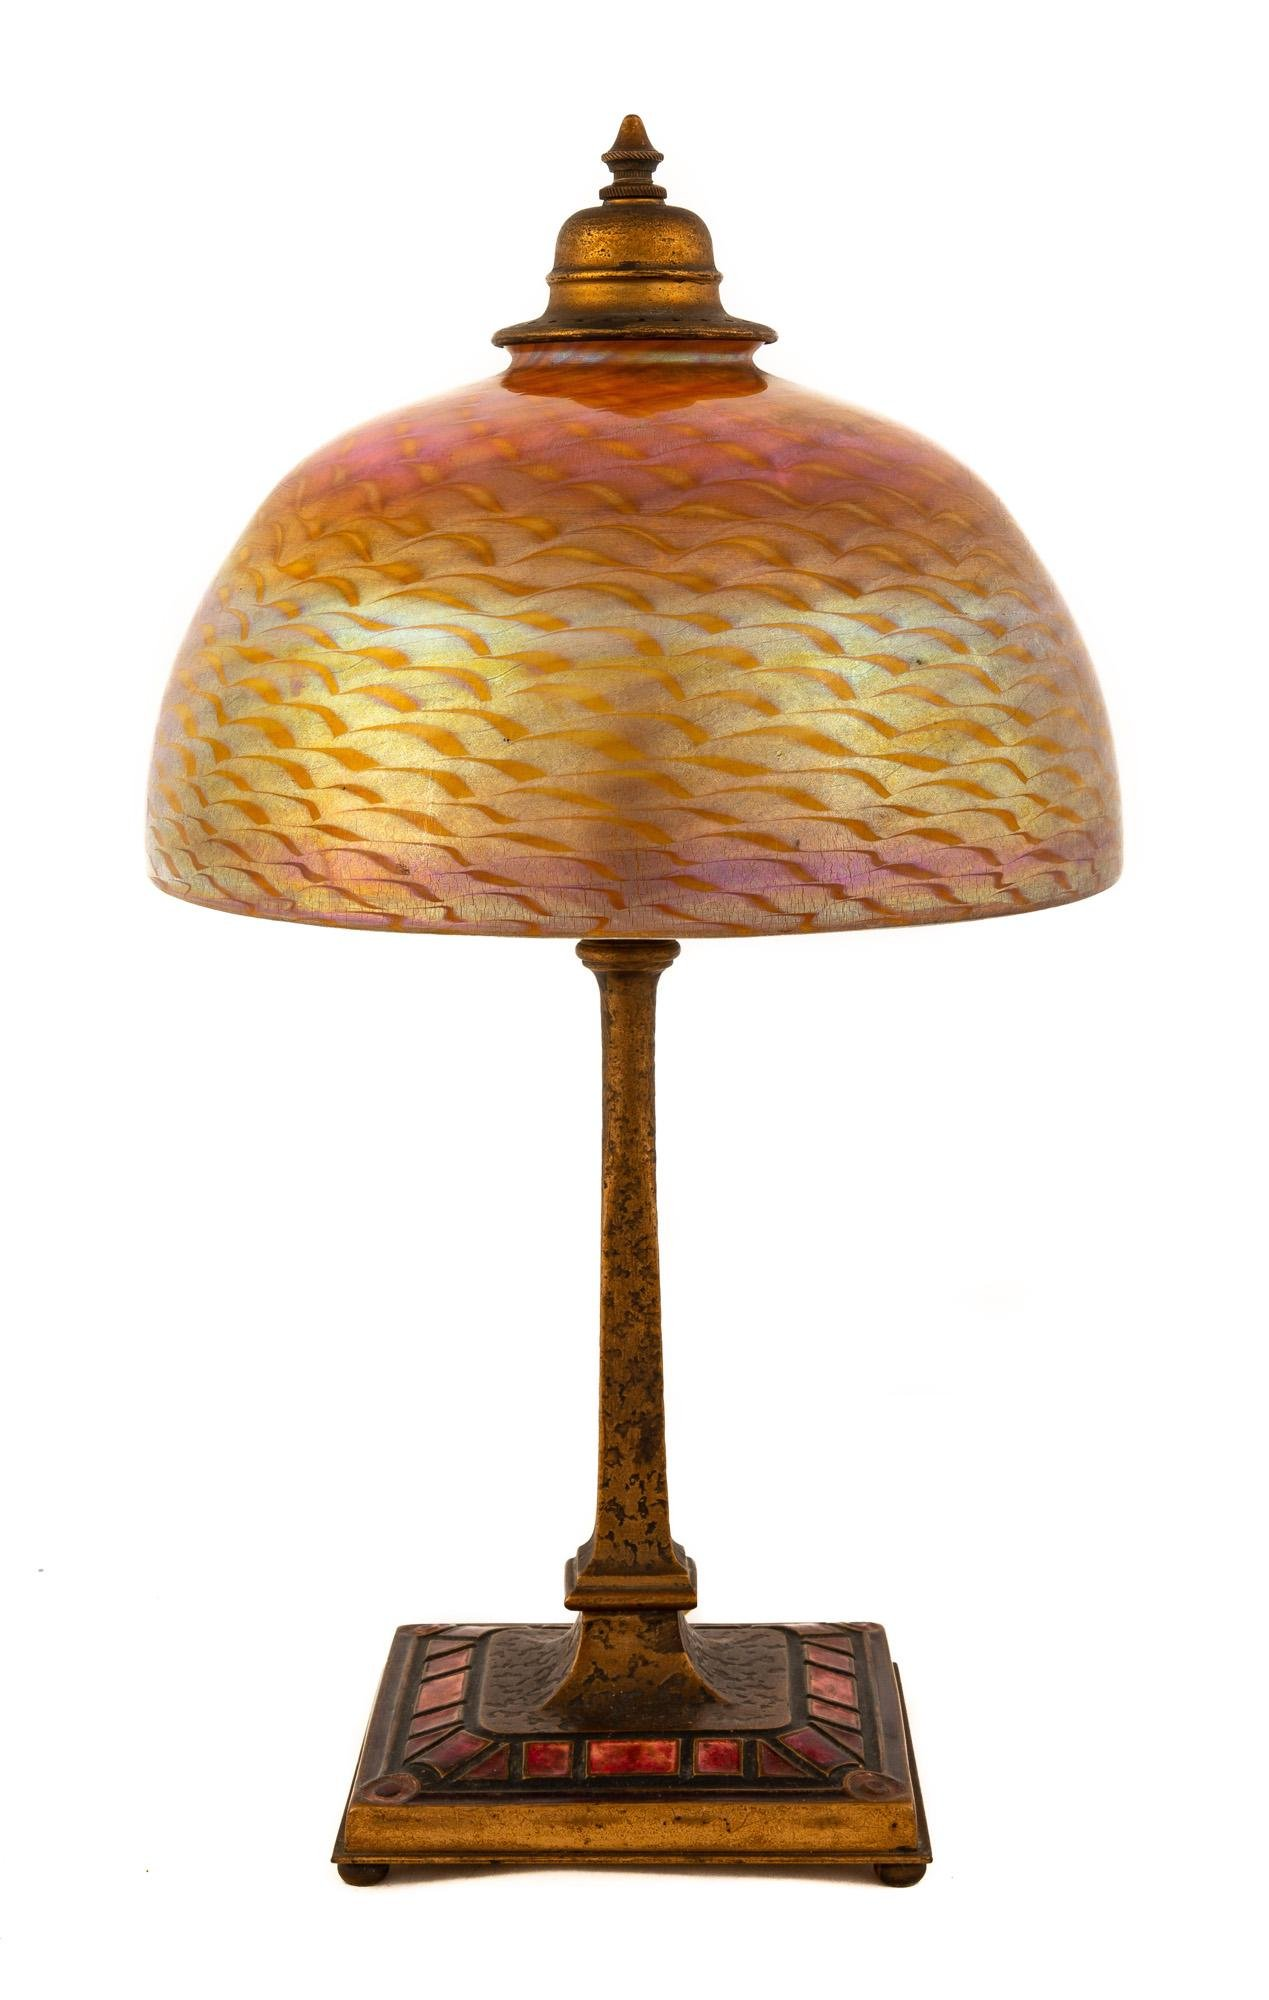 Tiffany Studios Bronze and Enameled Art Deco Desk Lamp